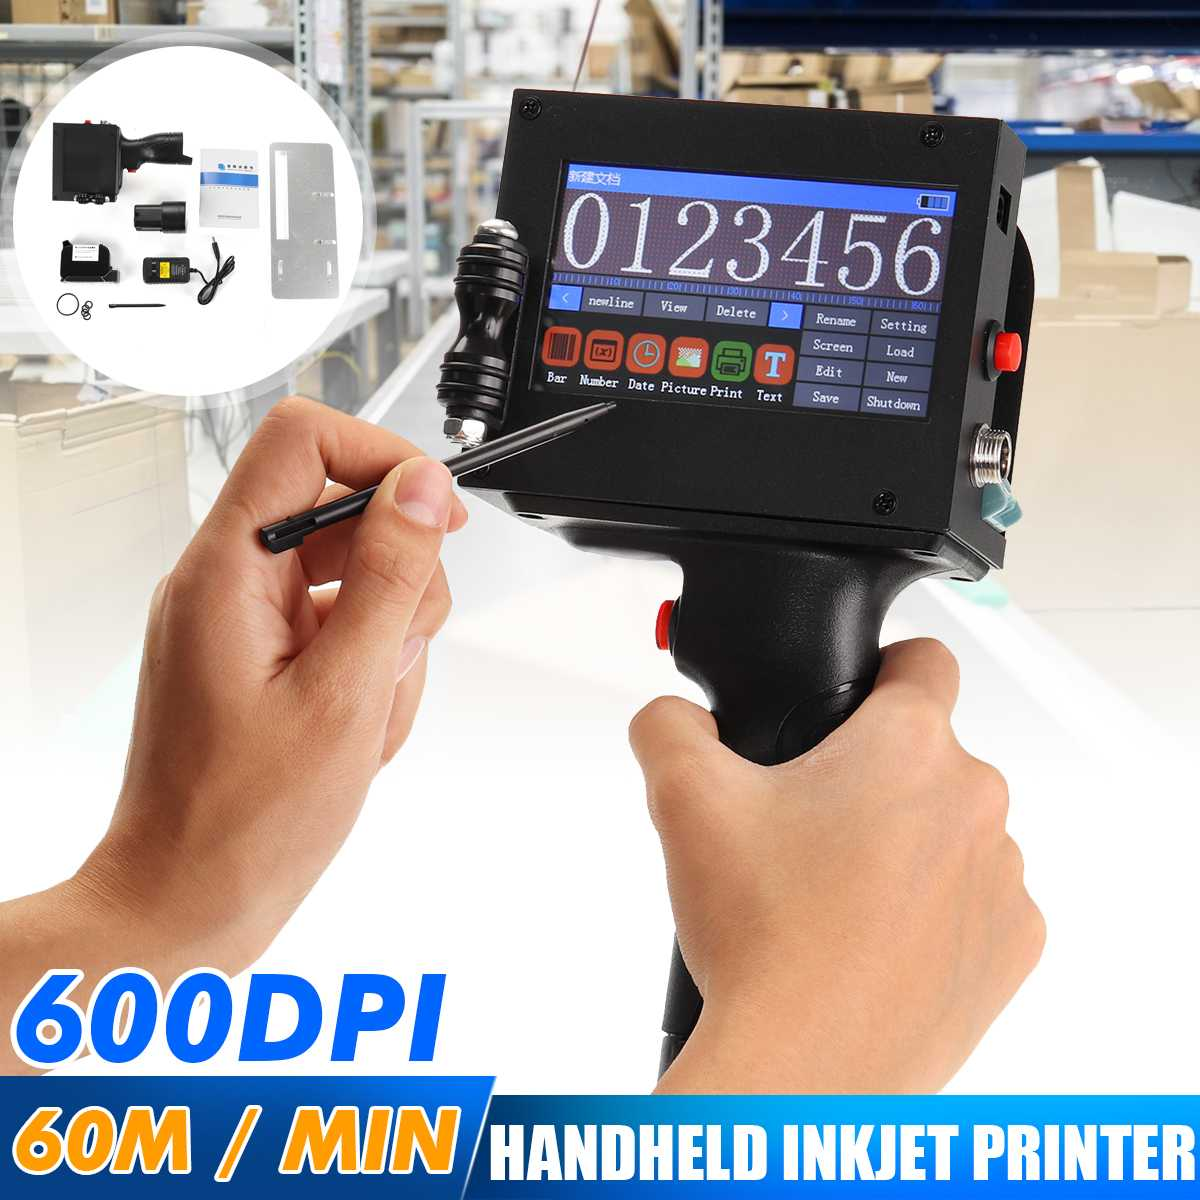 360 Degree Upgraded Hand Jet Handheld Touch Inkjet Printer For Logo/ Expiry Date/batch Code/serial Number/label/barcode/QR Code